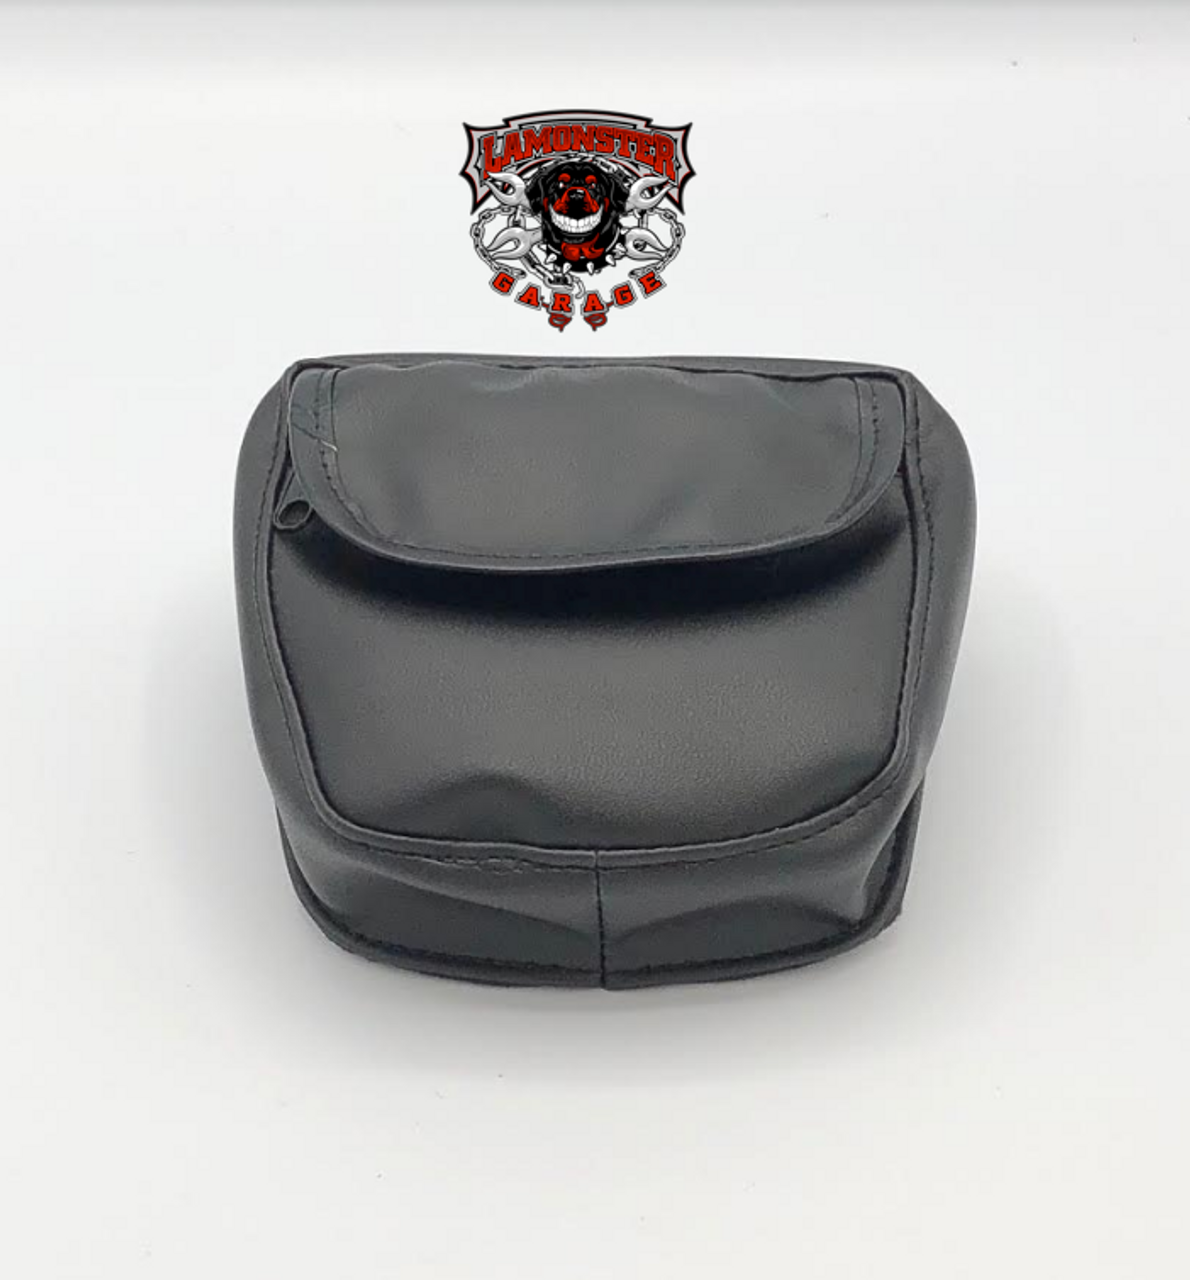 ( Shown with optional FMB Bag) Bag Dimensions 6X6X2